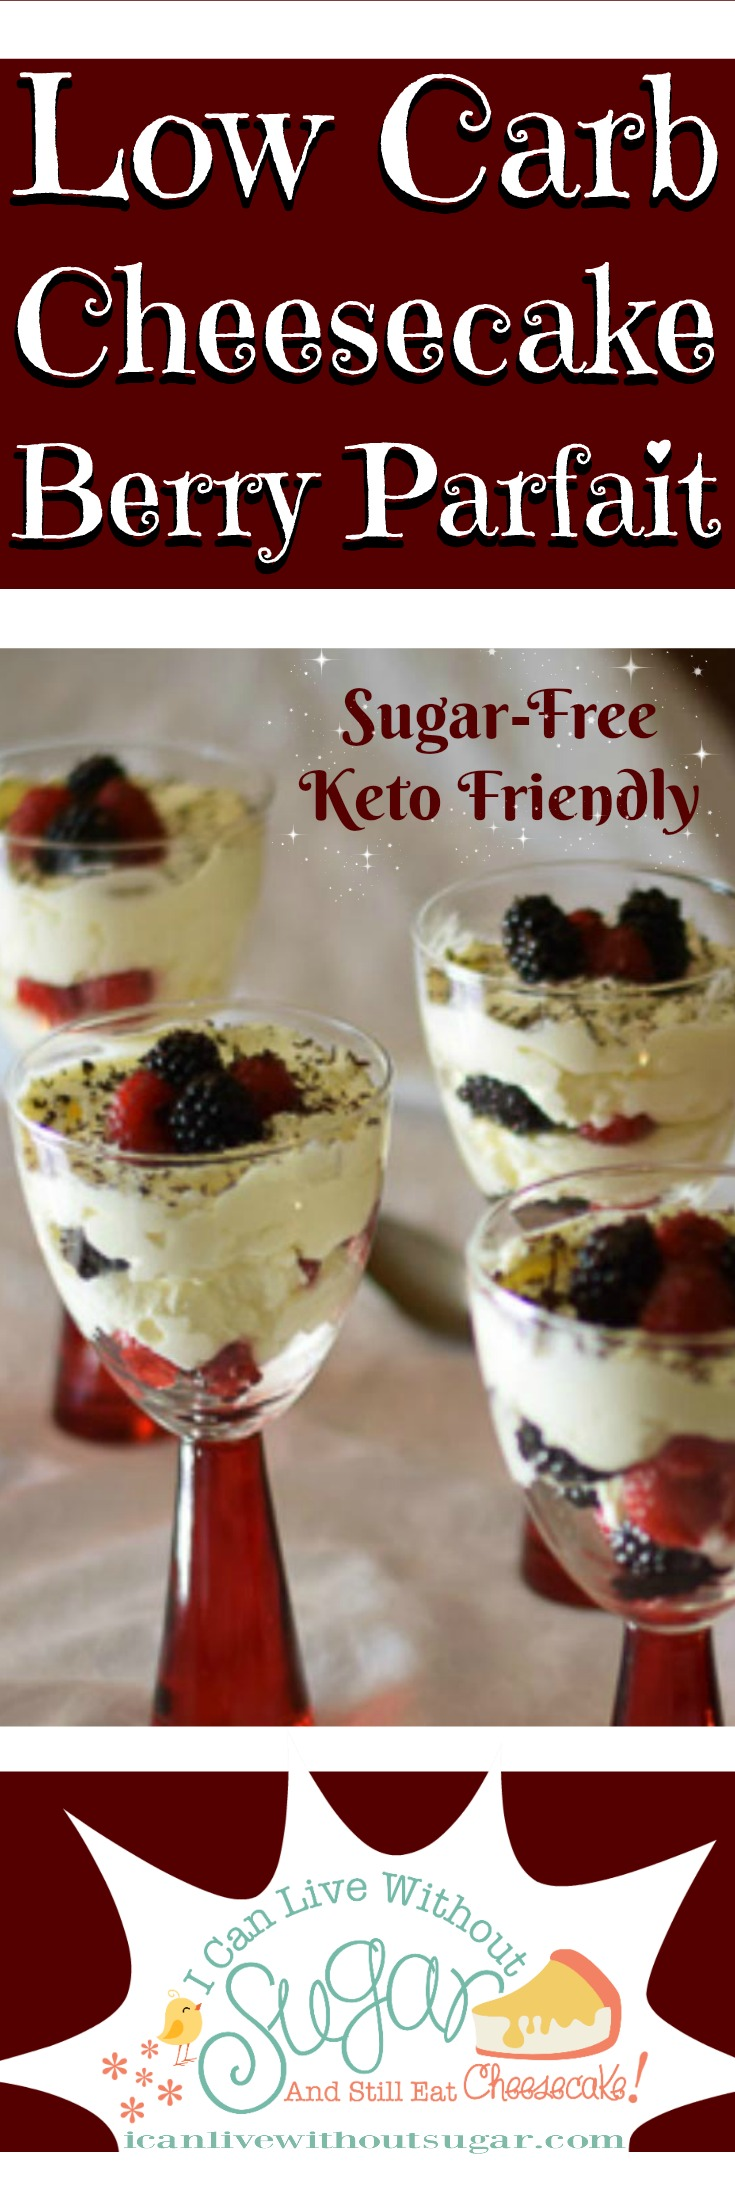 Low carb cheesecake berry parfait. It tastes so good and is easy to make! This low carb, sugar-free, keto dessert is the healthier way to enjoy a treat.